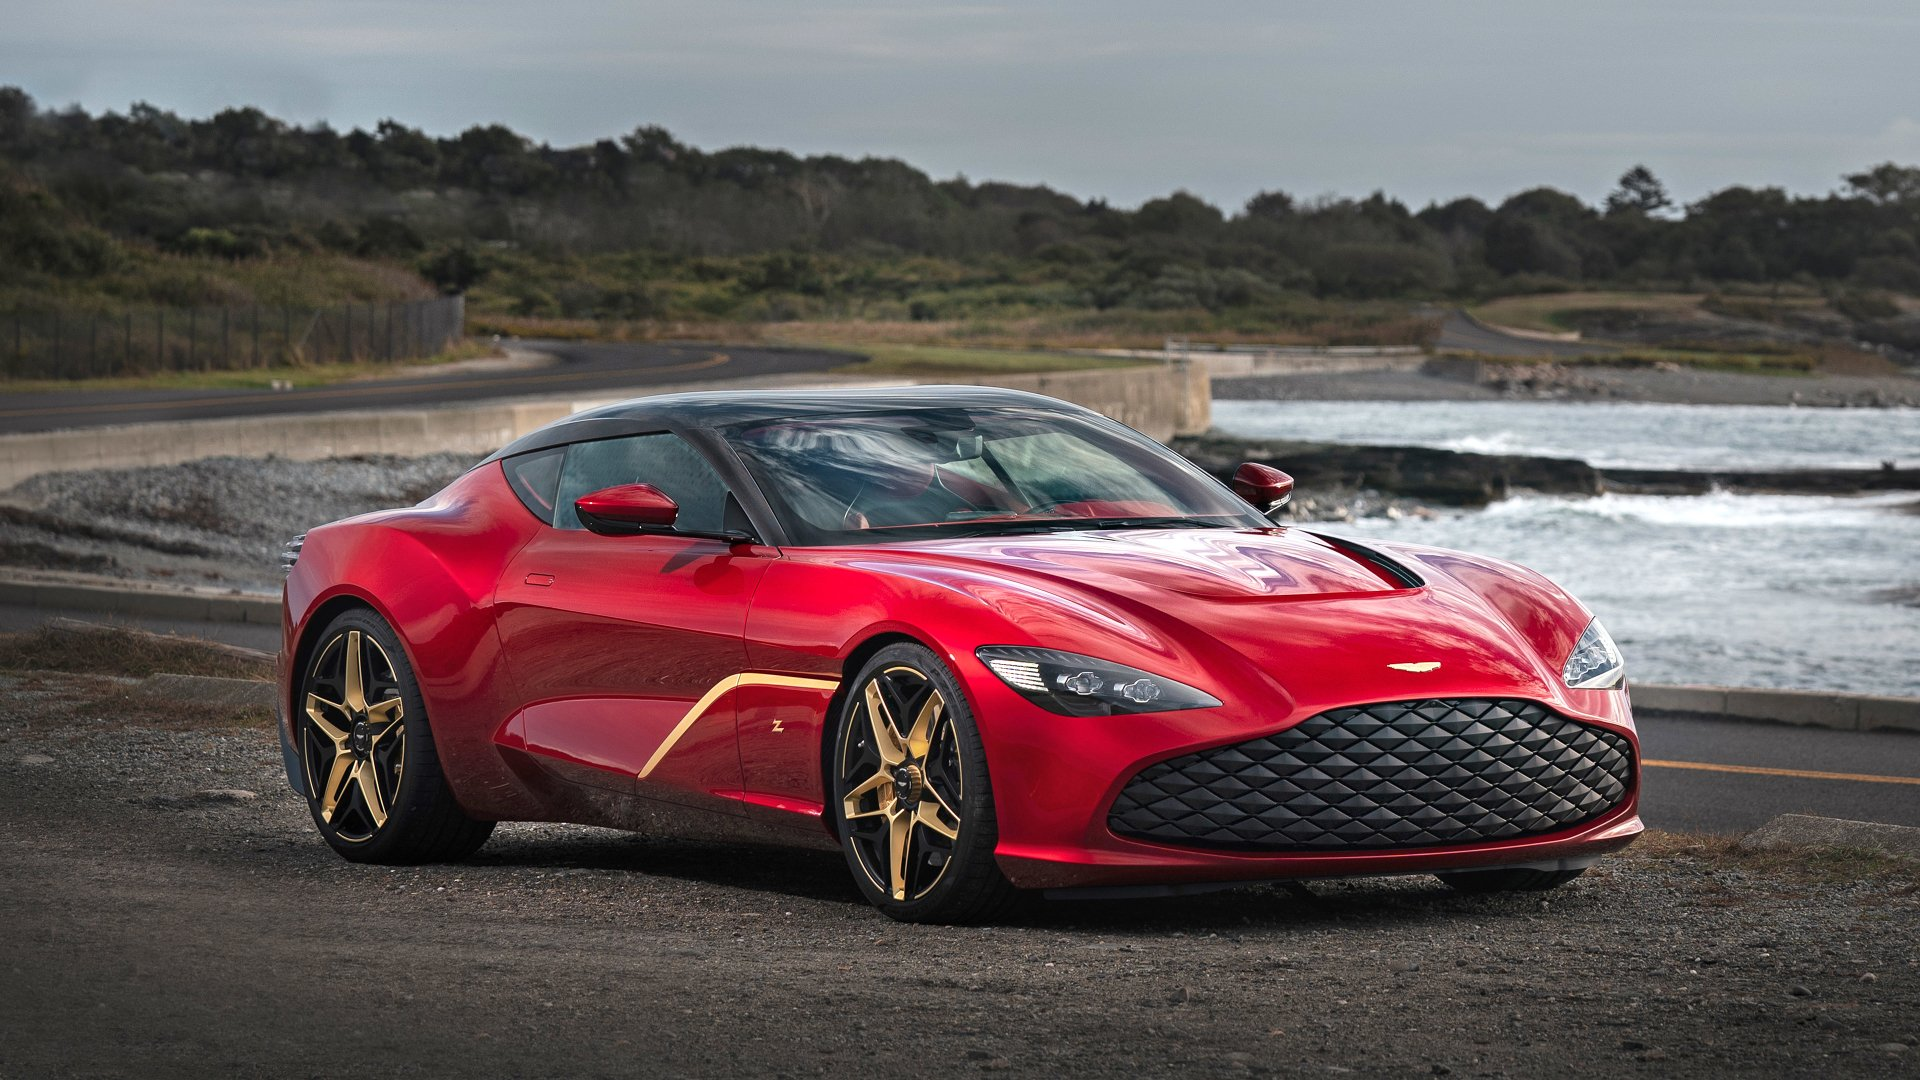 7 Aston Martin Dbs Gt Zagato Hd Wallpapers Background Images Wallpaper Abyss